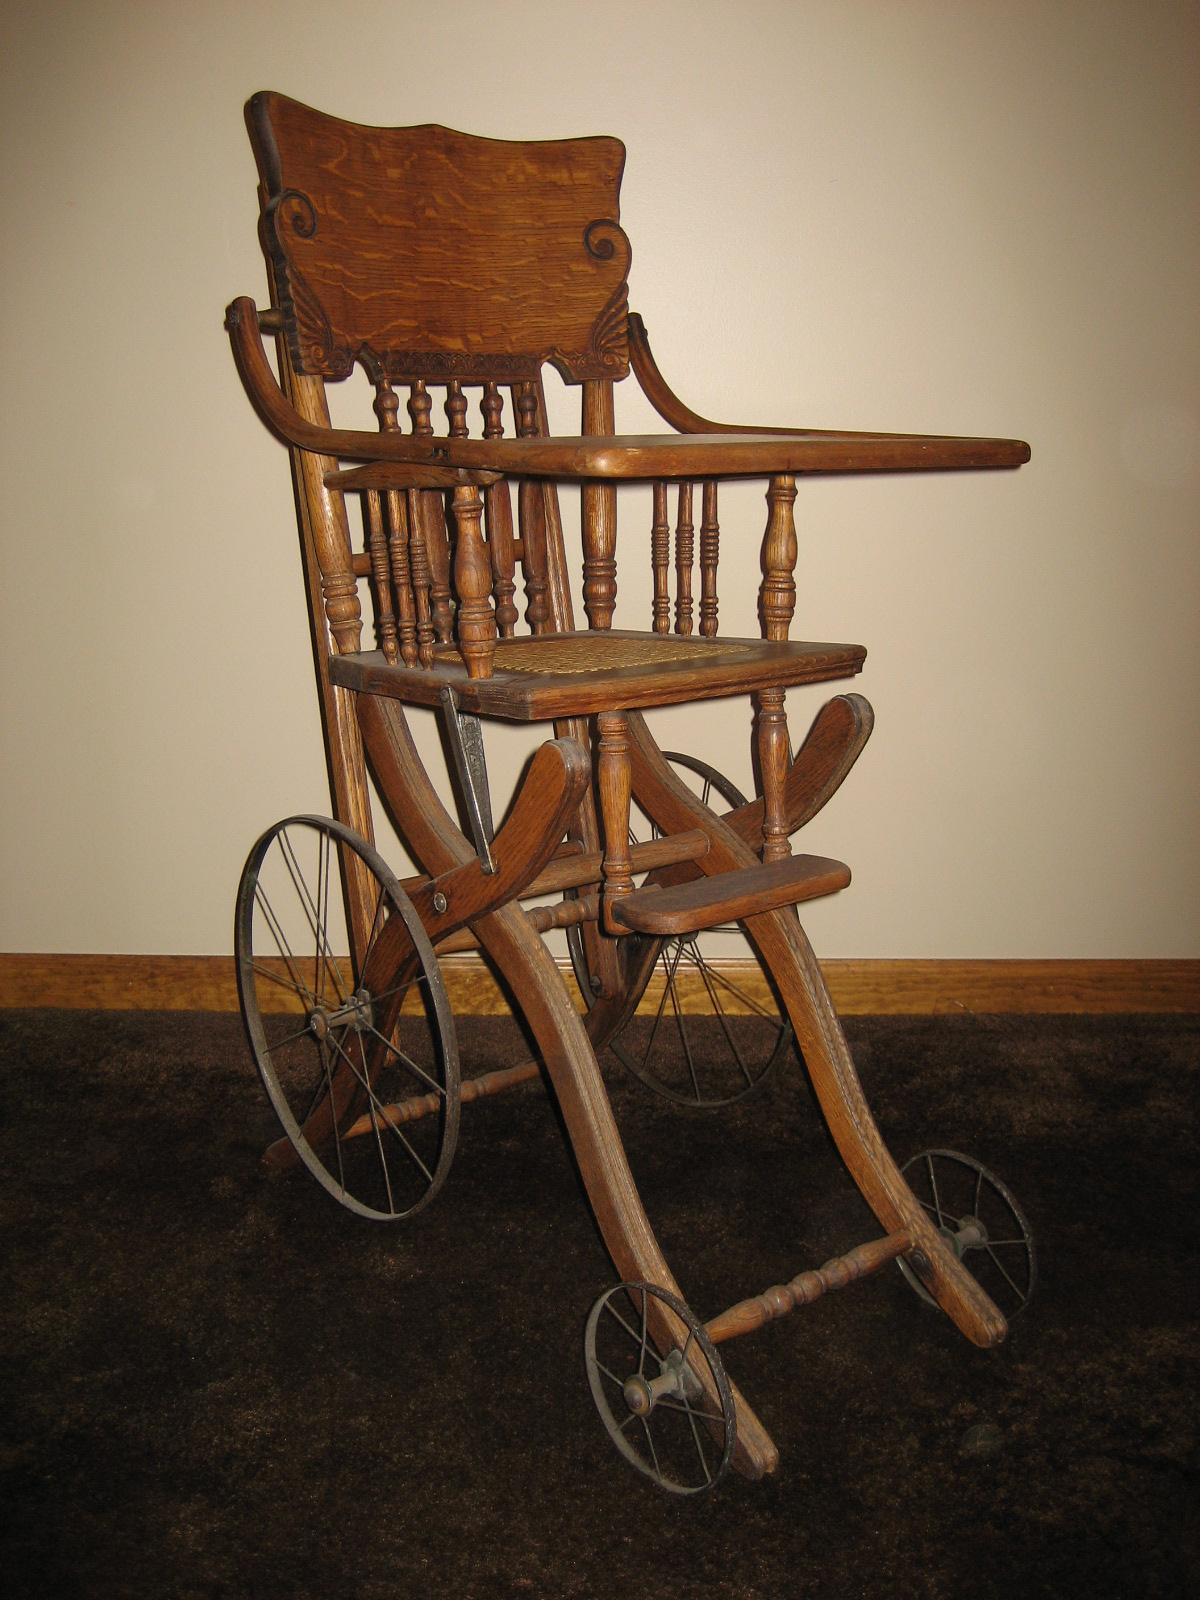 1890's OAK HIGHCHAIR/STROLLER